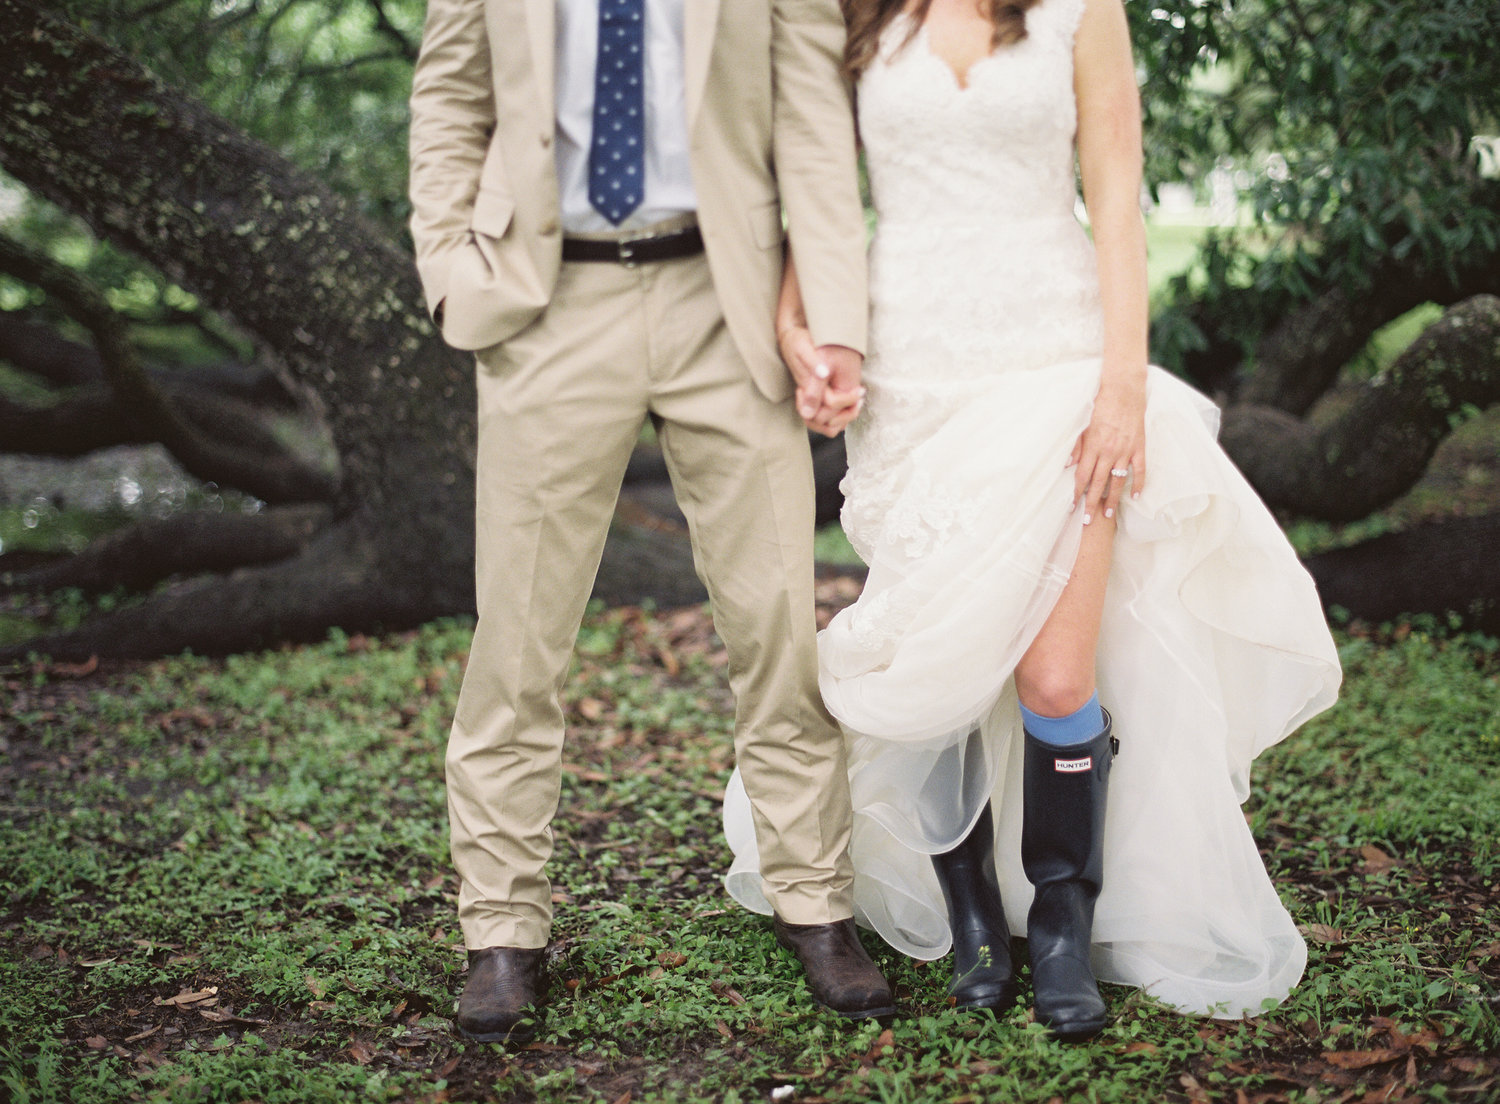 Bride and groom kiss in front of a big oak tree while the bride shows her rain boots under her dress